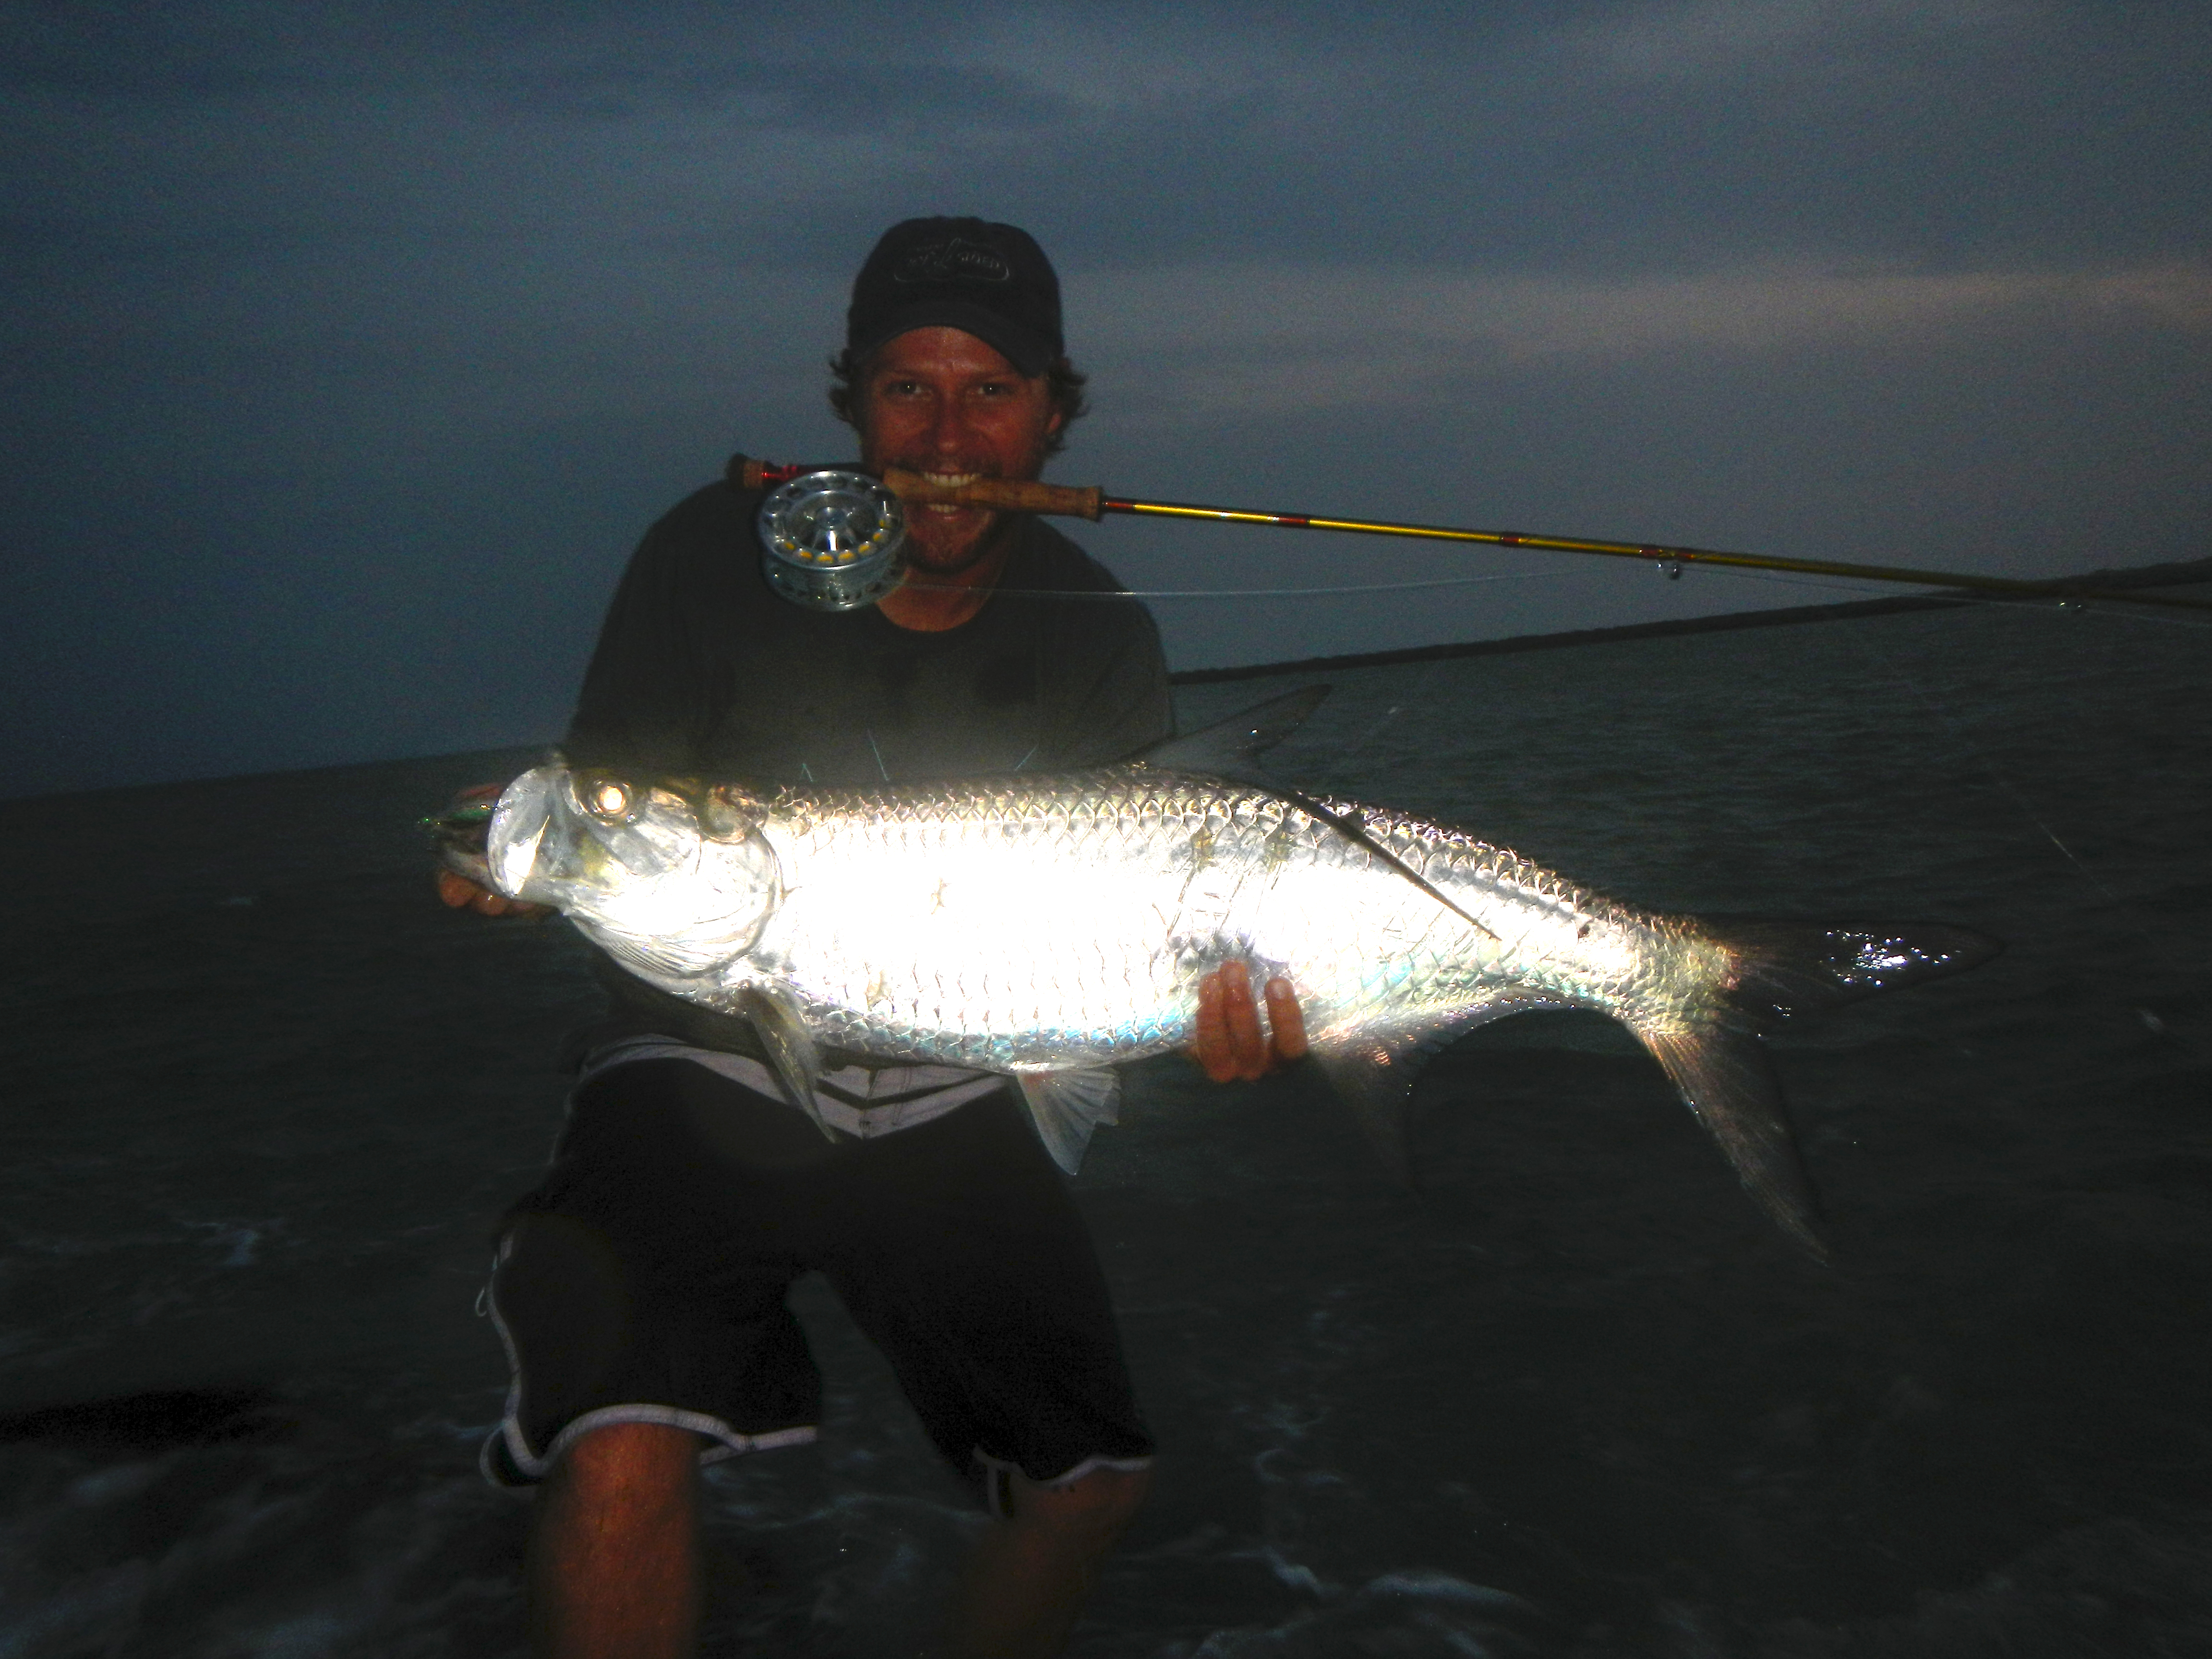 Fly fishing tarpon in texas winter storms kenjo fly fishing charters estimated nvjuhfo Images